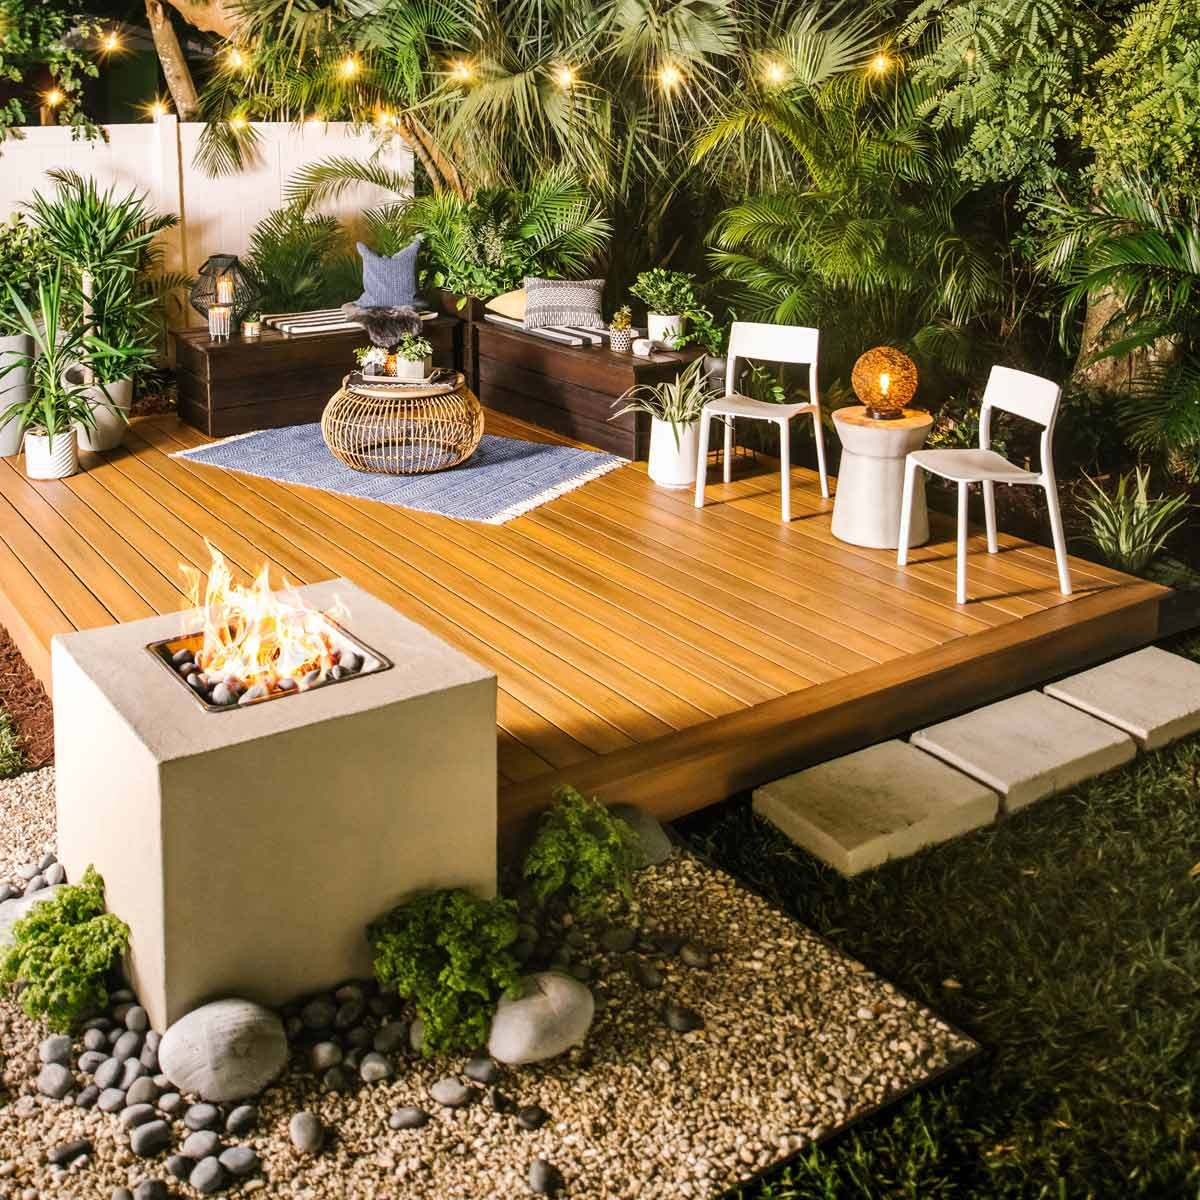 50 Brilliant Ways to Spruce Up Your Backyard This Summer